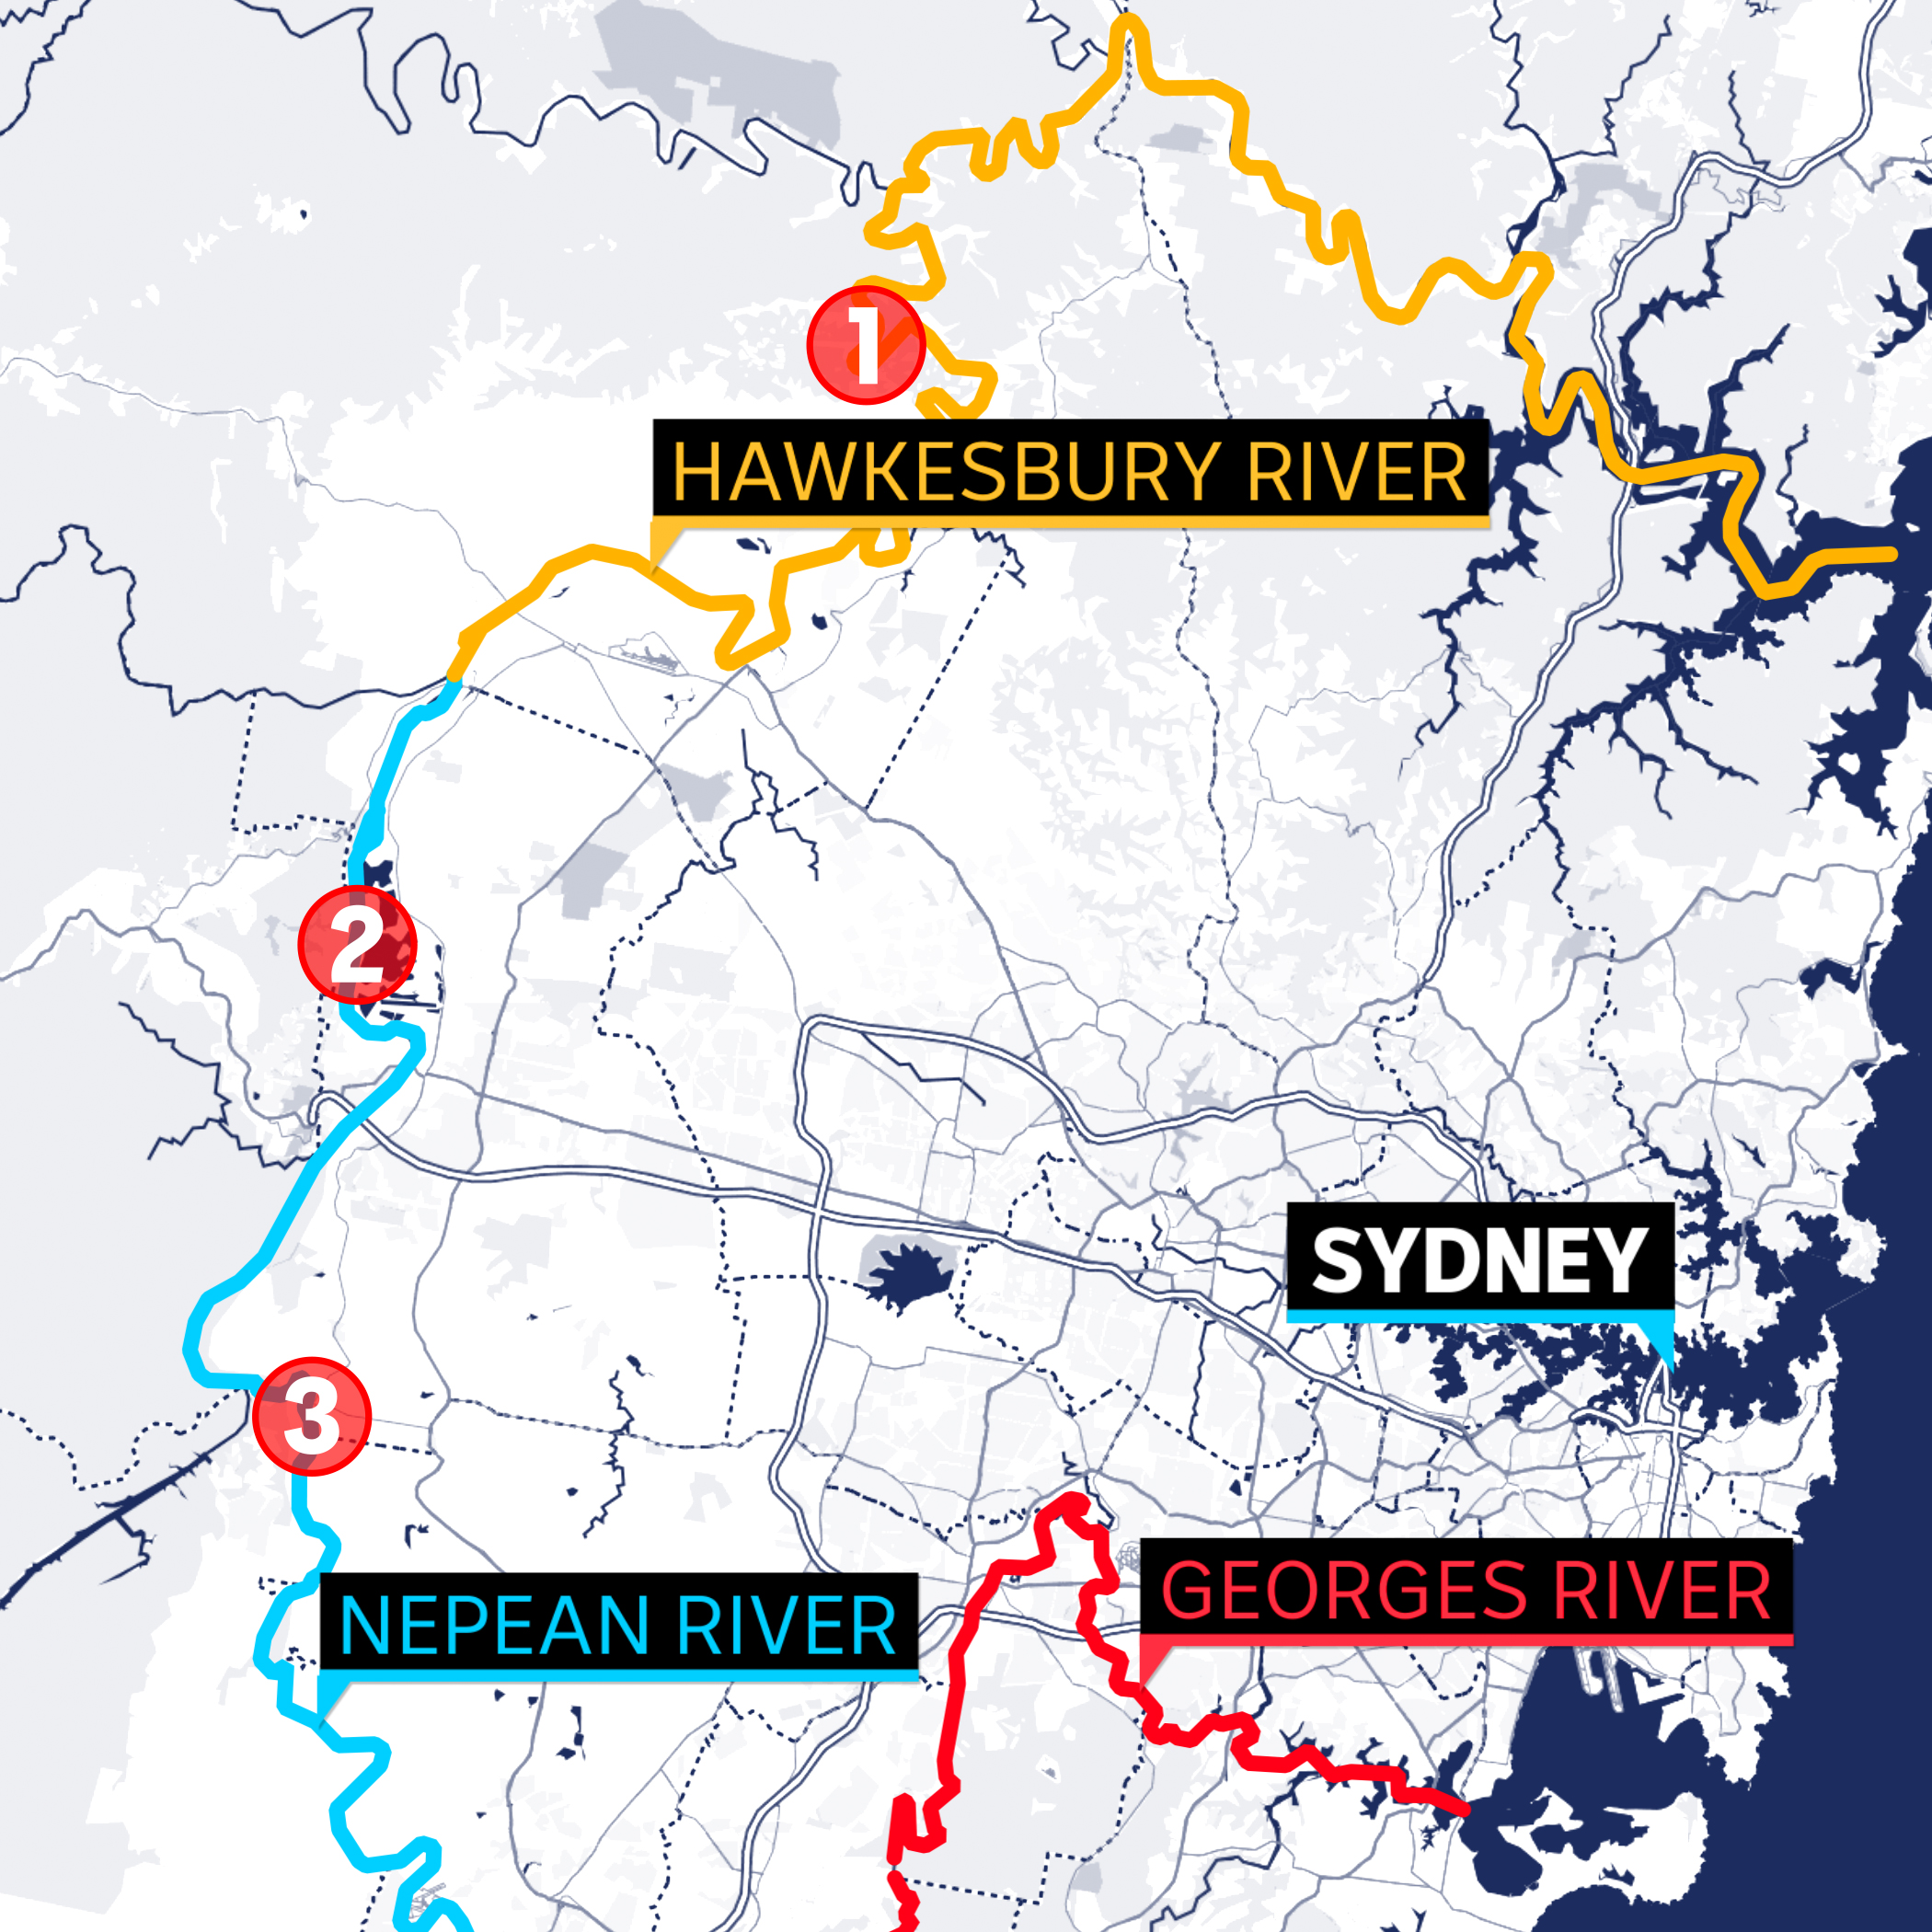 A map showing Sydney and its surrounding rivers, including where they are narrowest.